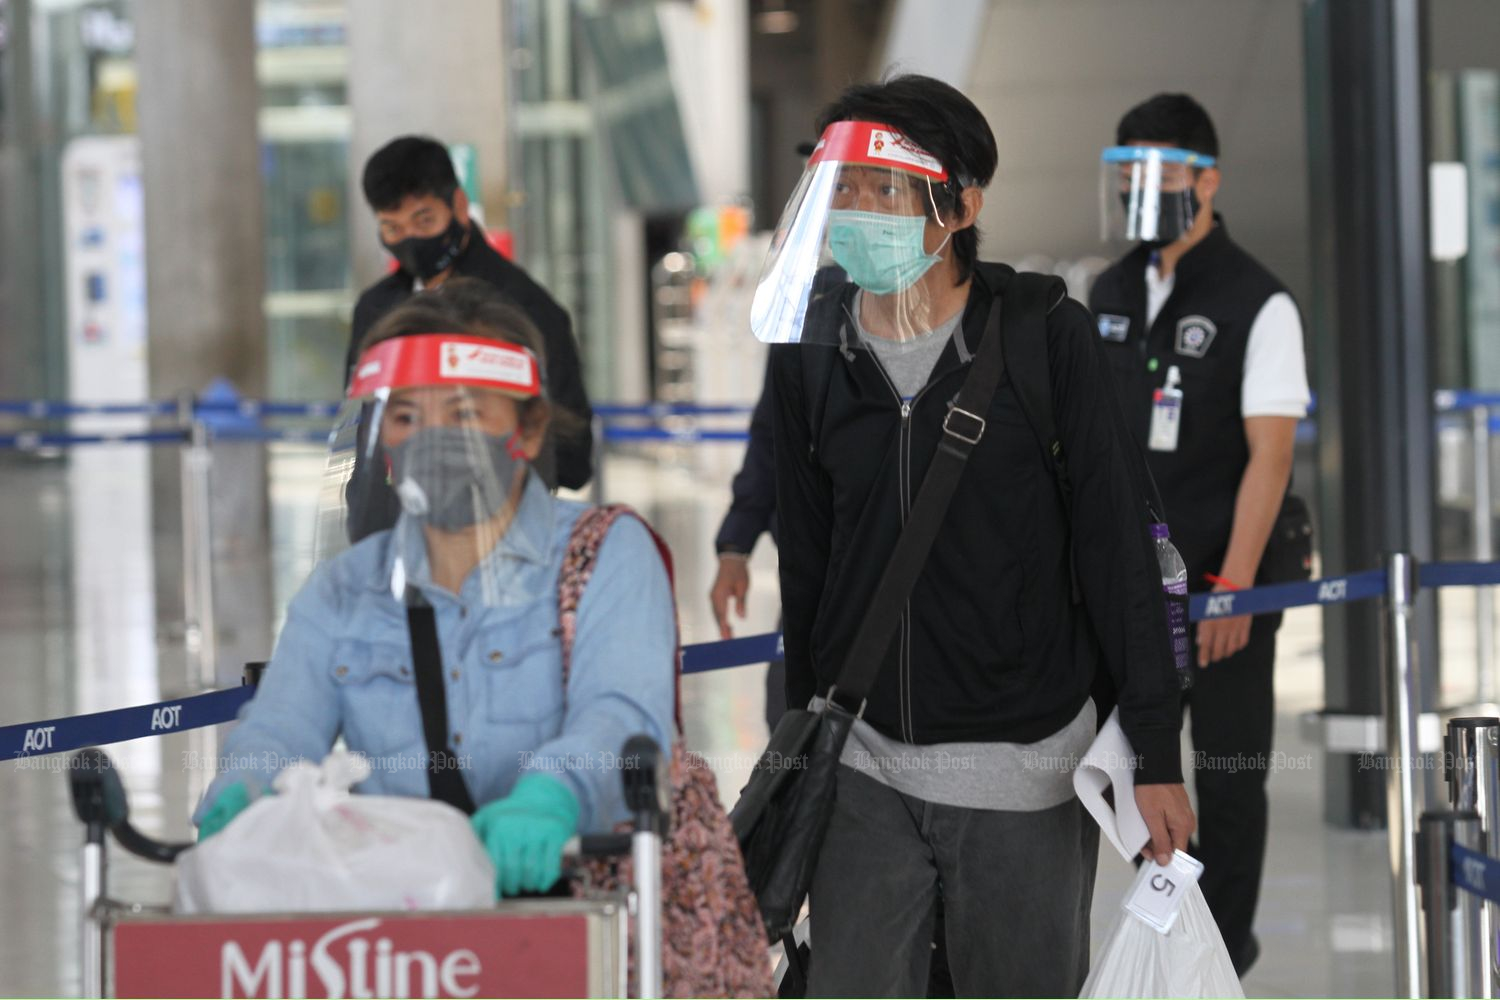 Some of the 35 Thais returning home from India are processed at Suvarnabhumi airport upon landing on Wednesday afternoon. All but one were sent to state quarantine at Chor Cher - The Green Residence hotel in Samut Prakan province. The other with a slight fever was sent to a hospital. (Photo by Nutthawat Wicheanbut)